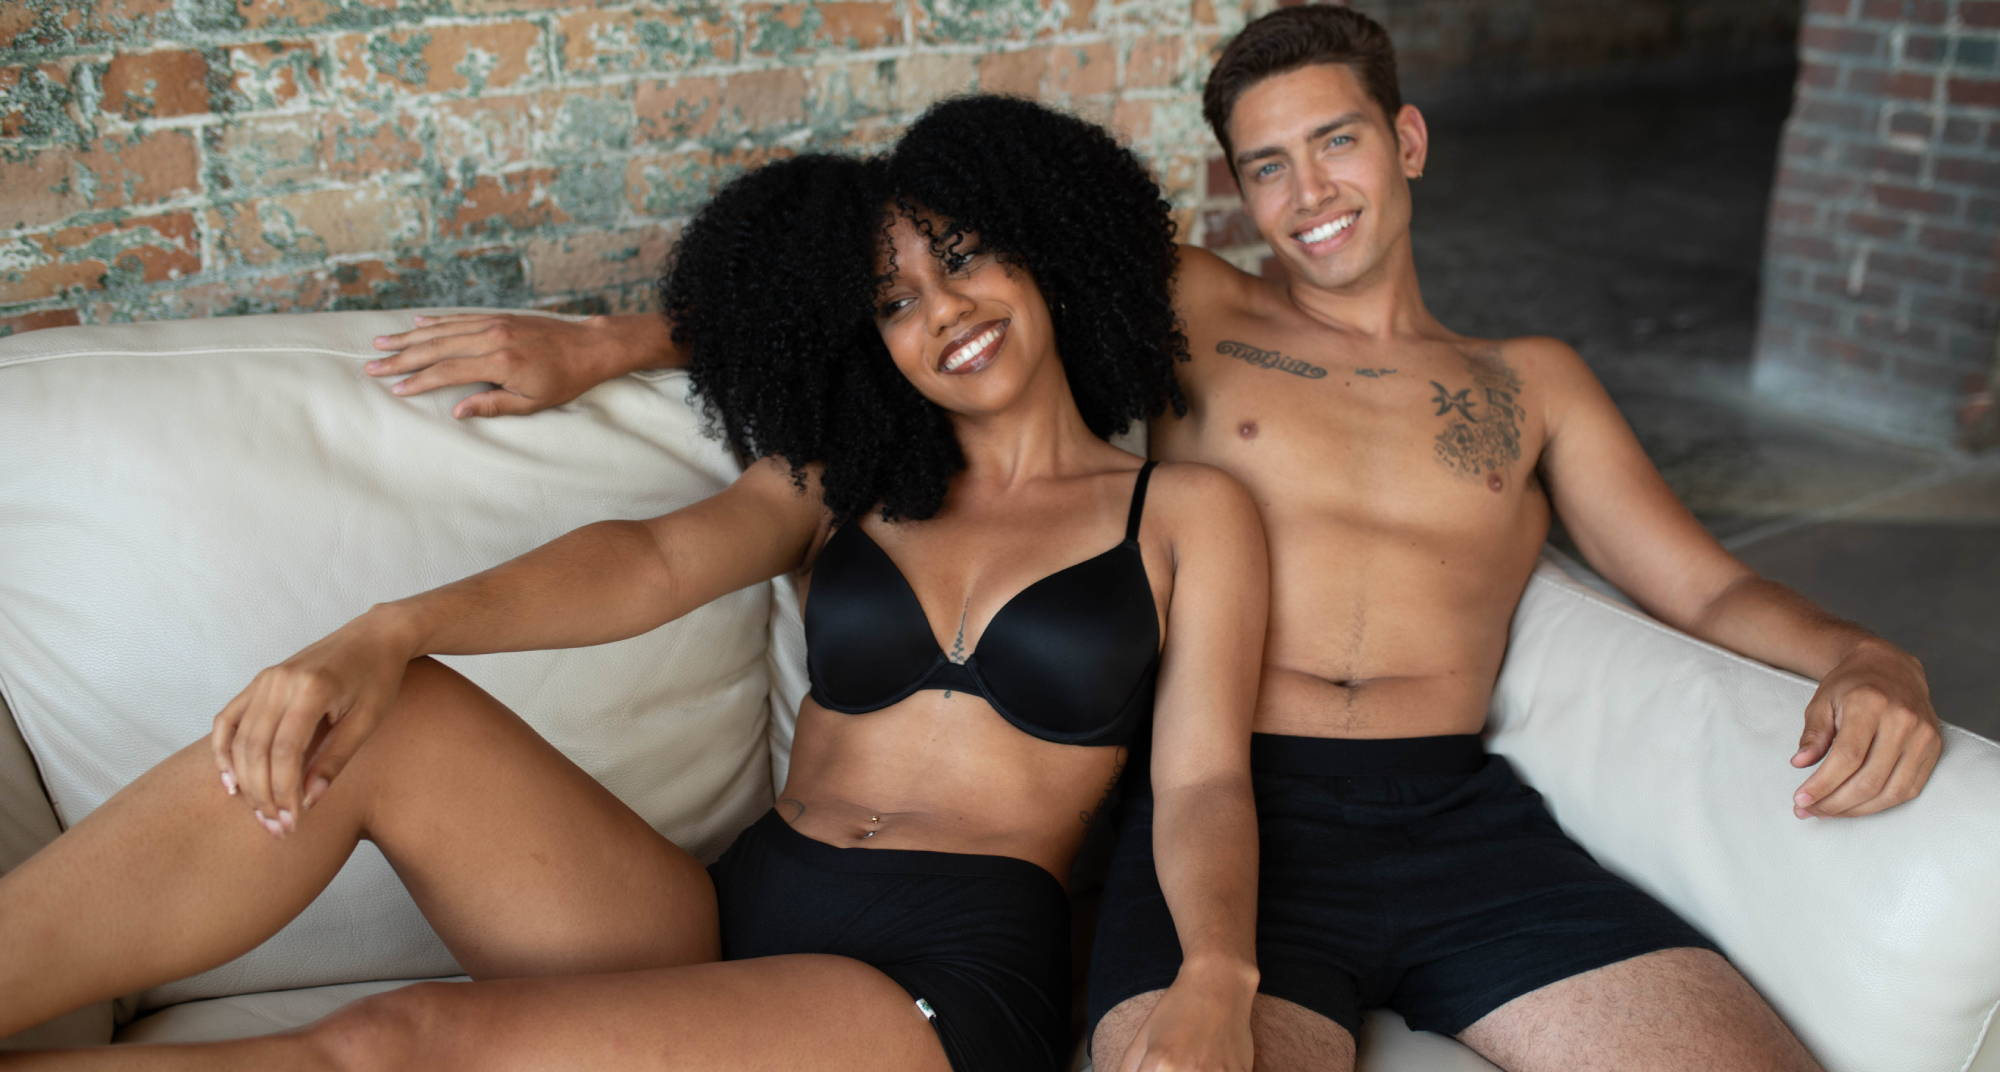 A man and woman cuddle on a couch in WAMA hemp underwear while we discuss why girls wear boxers.